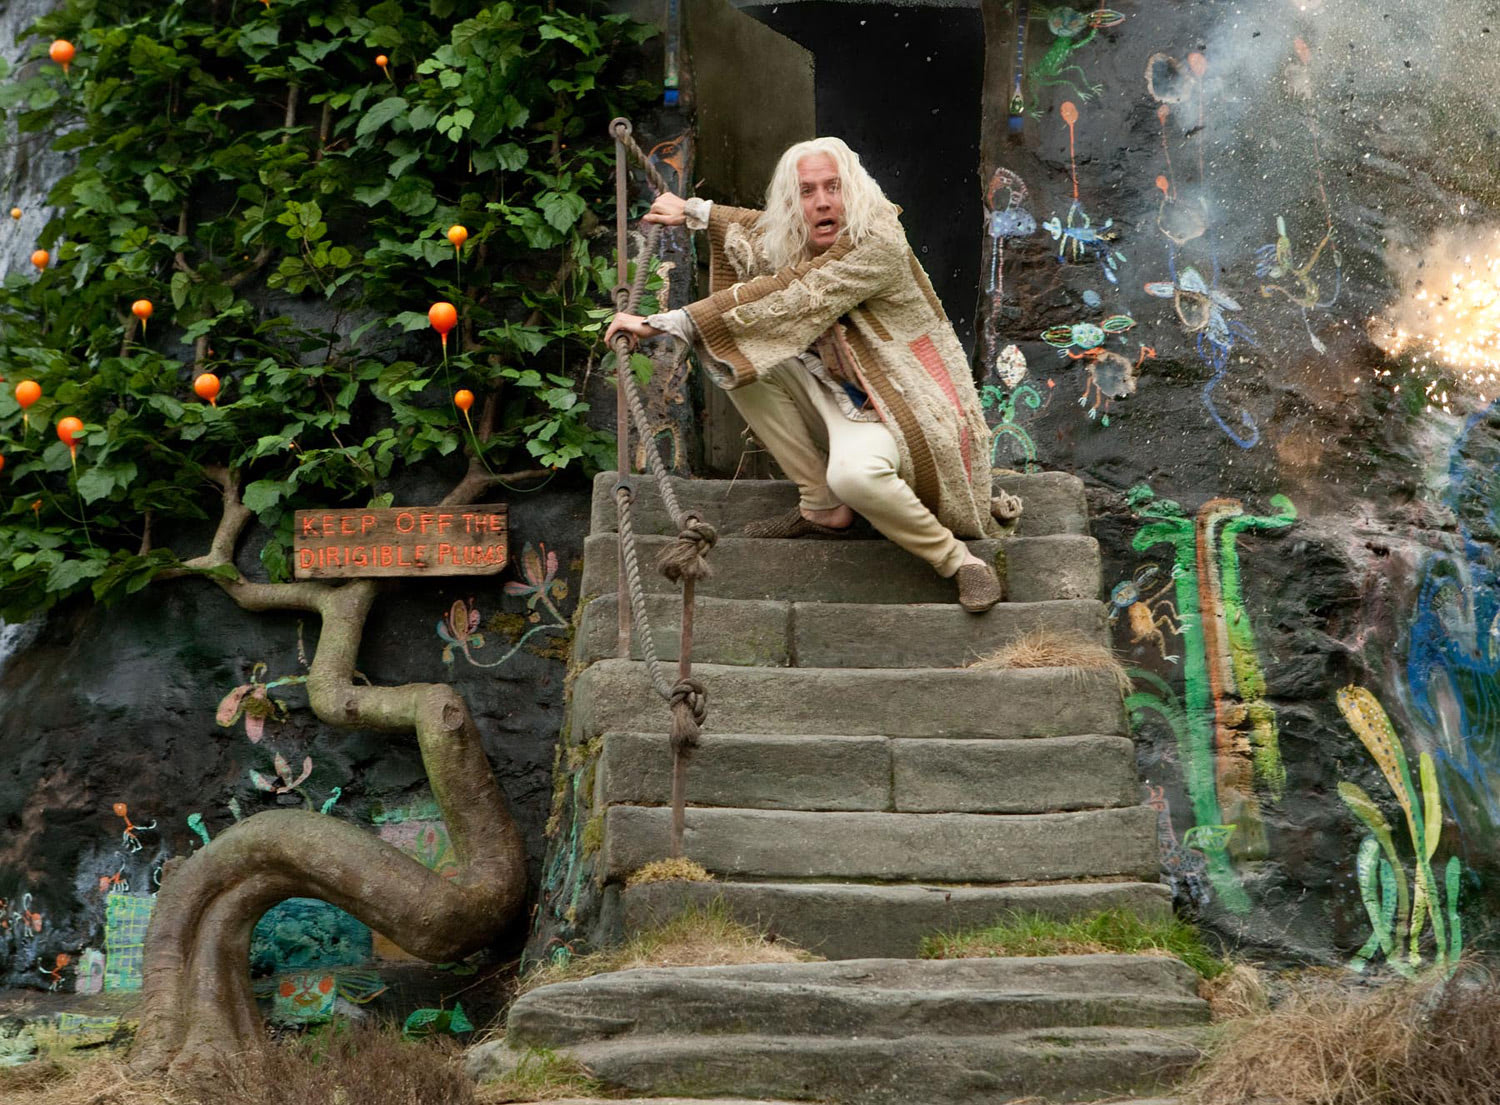 Xenophilius Lovegood's house is attacked